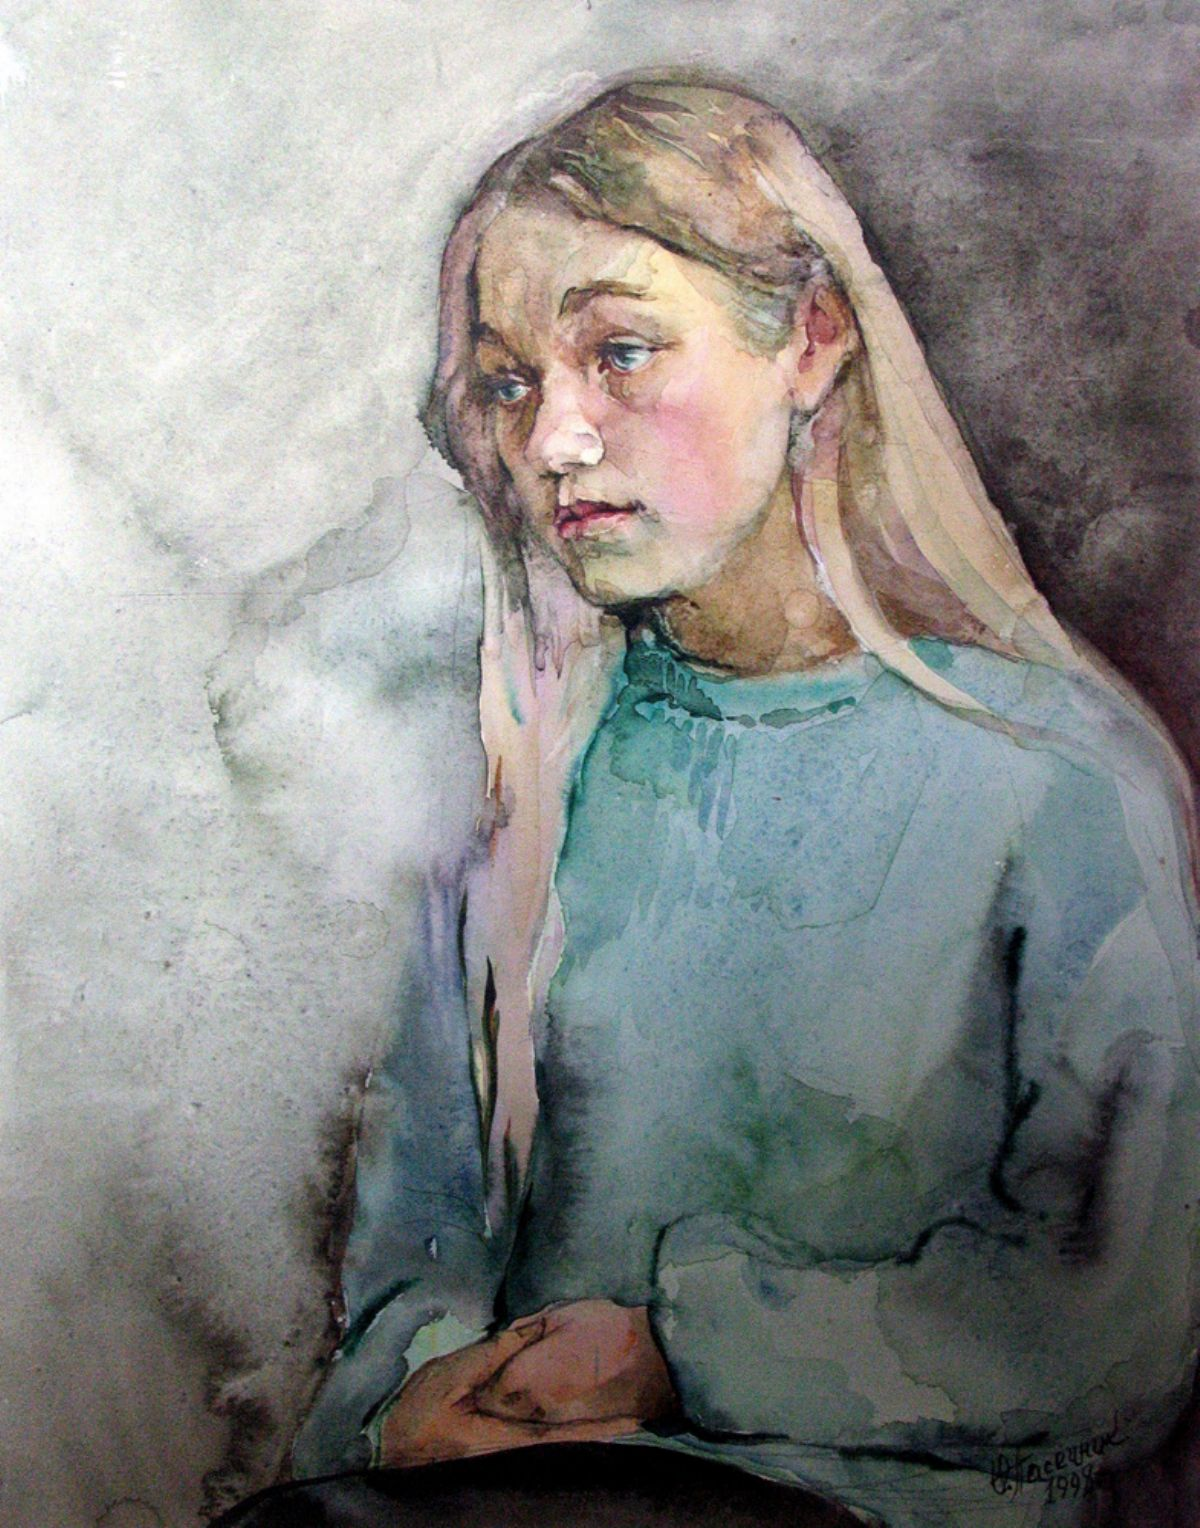 Veps girl  artwork by Olga Pasechnikova - art listed for sale on Artplode